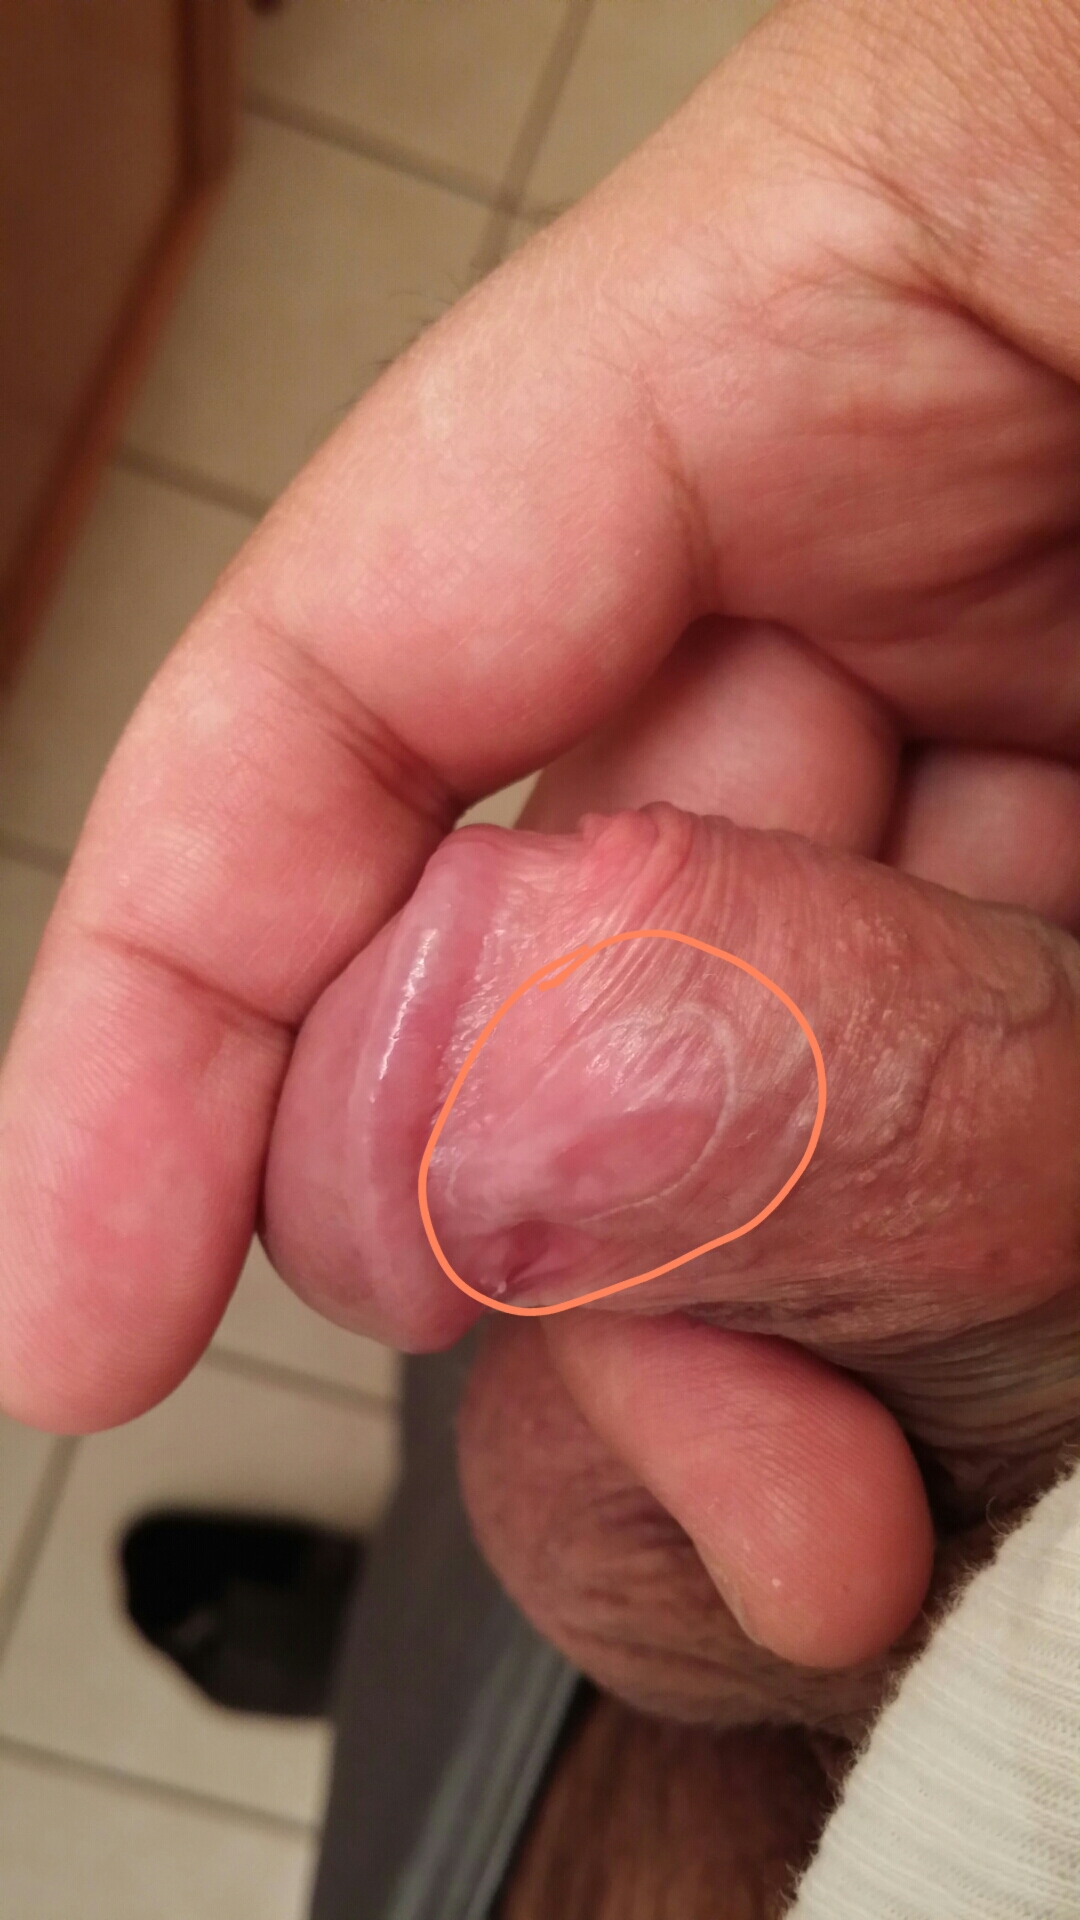 White Ring On Penis 3